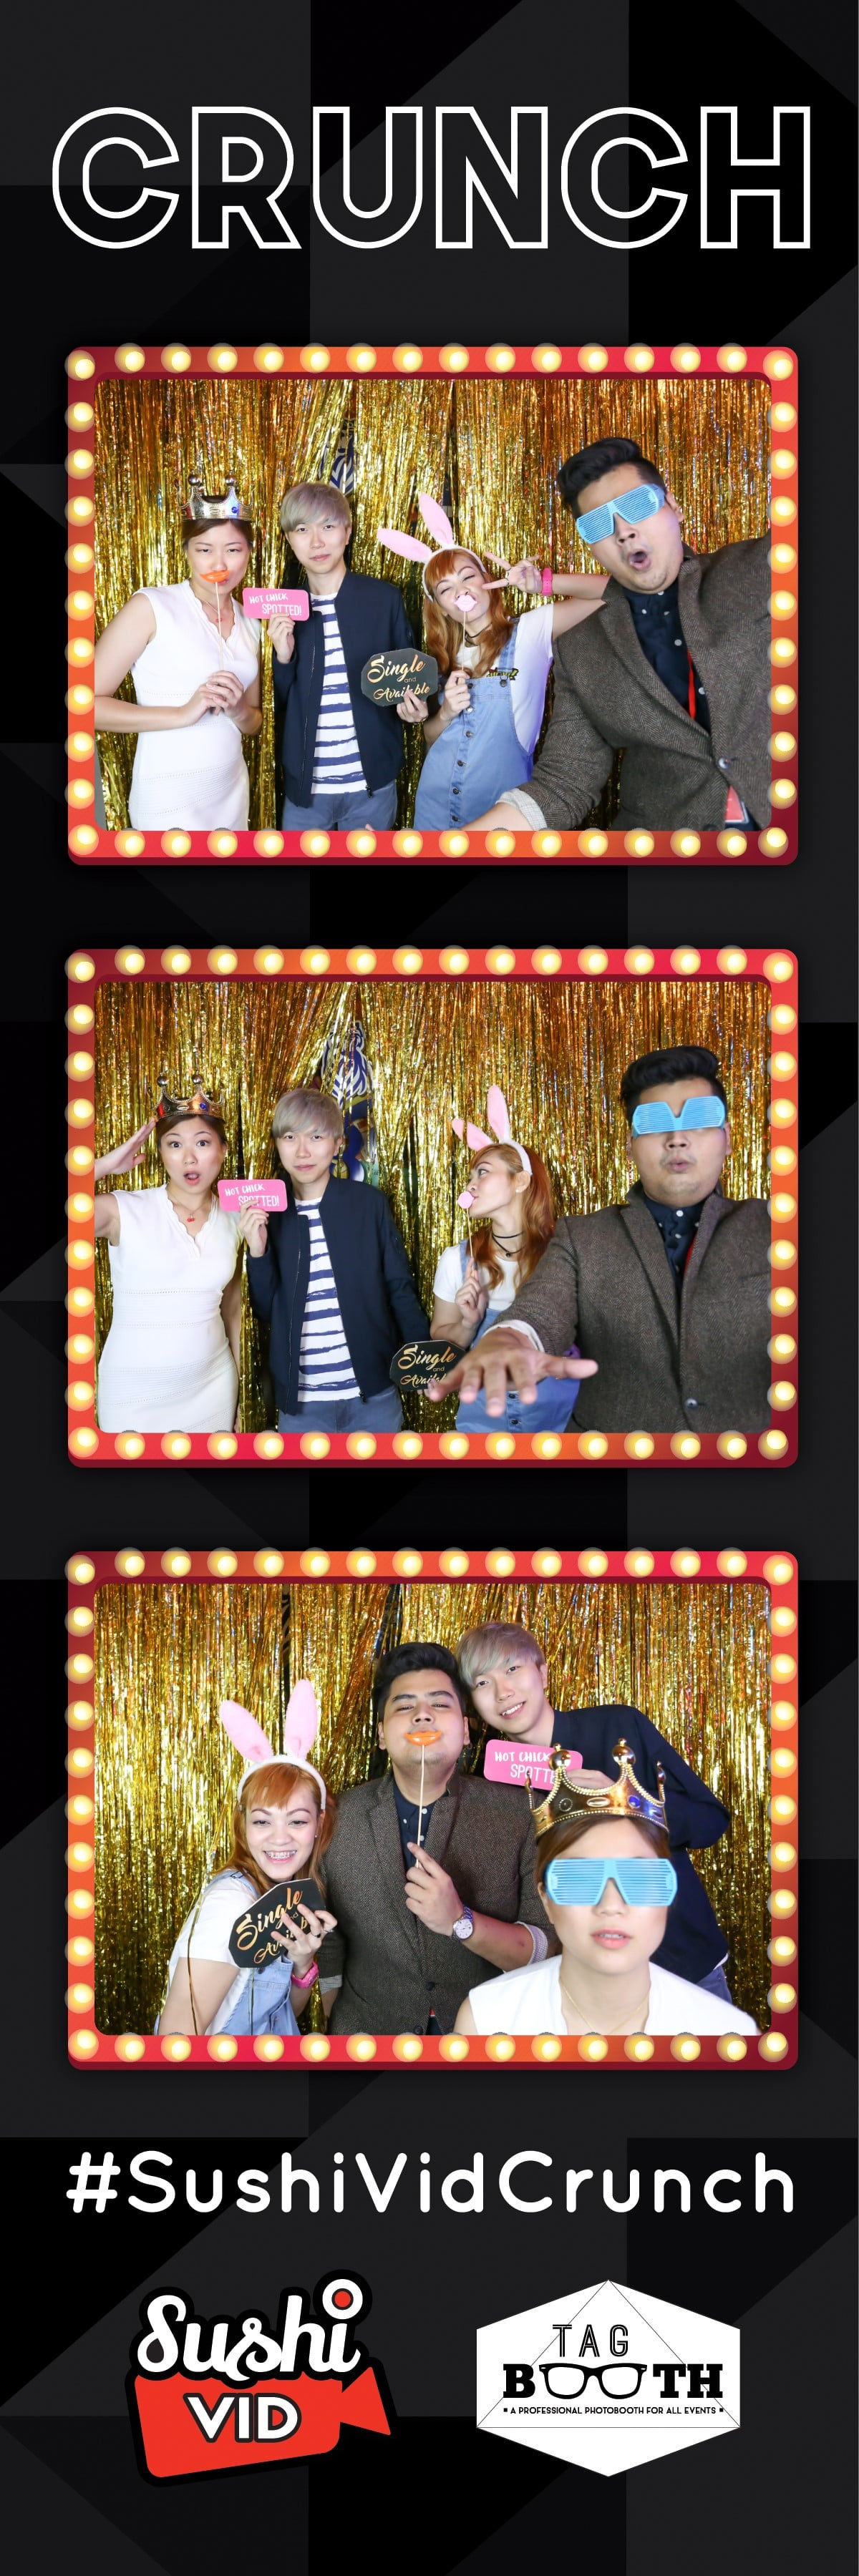 Sushivid+crunch+tagbooth1+10